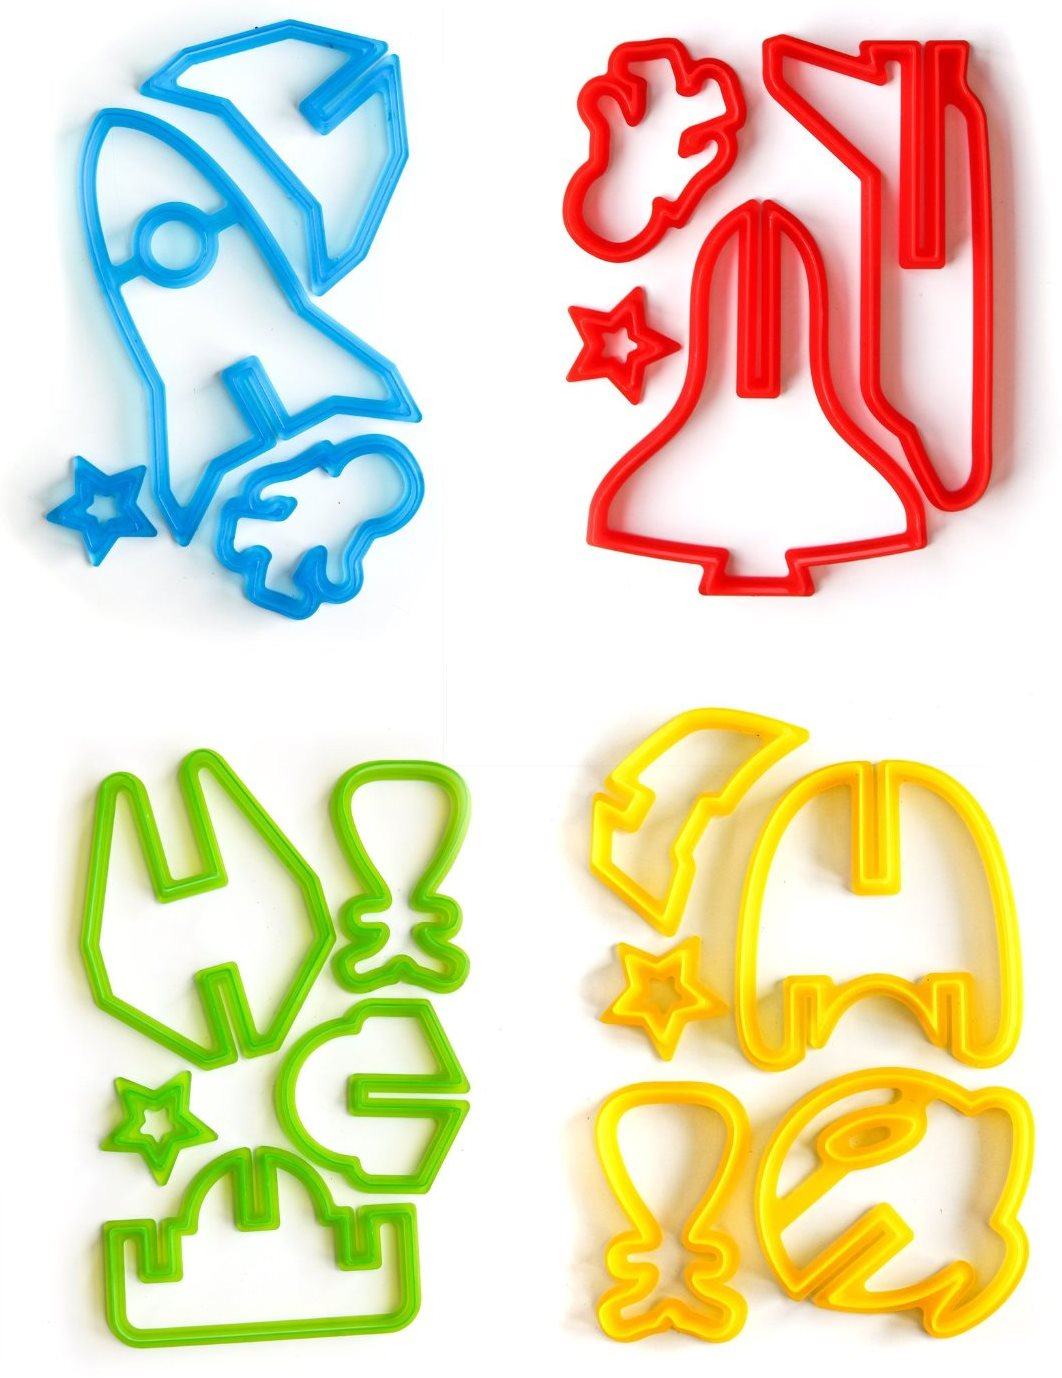 3d Space Ship Cutout Chirstmas Cookie Cutters